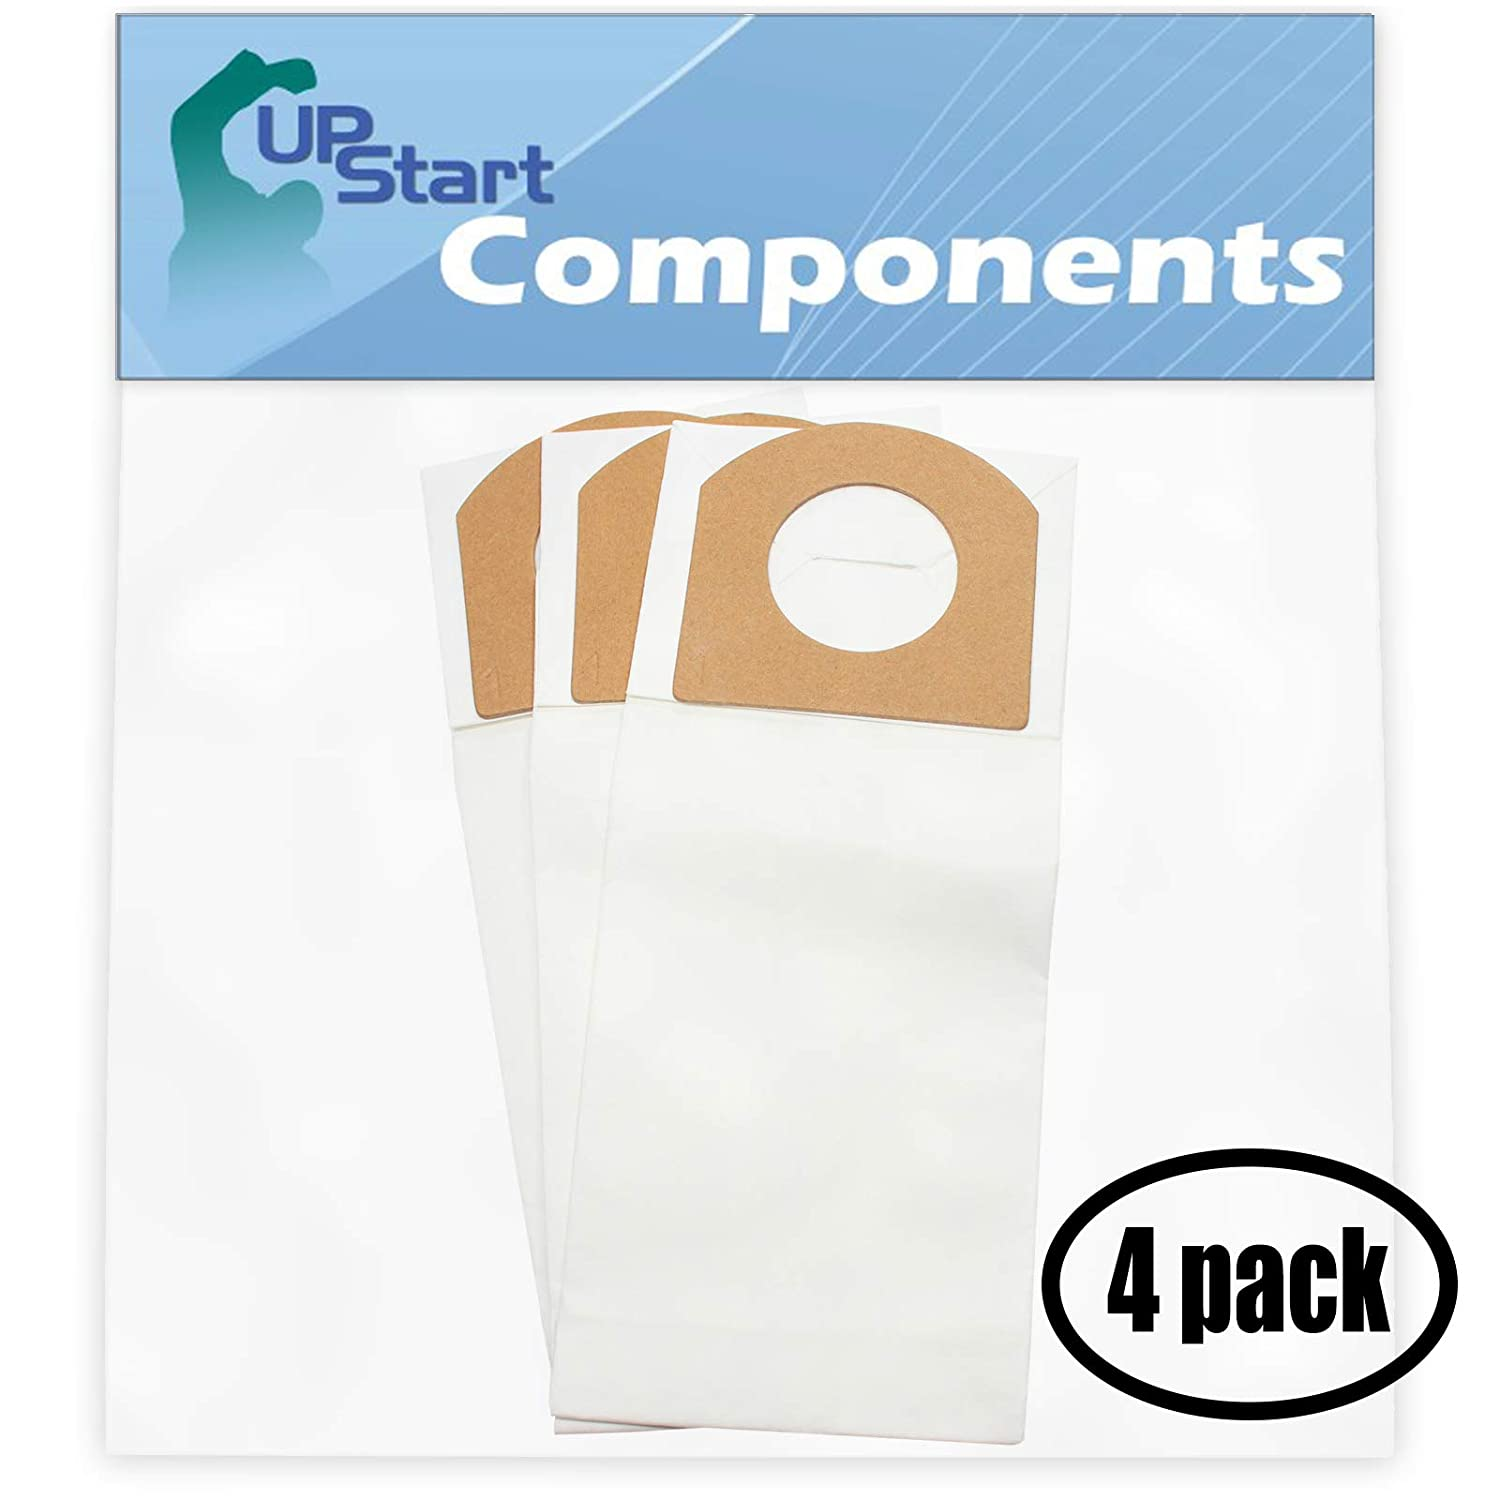 12 Replacement Type G Vacuum Bags for Dirt Devil - Compatible with Dirt Devil 103, Dirt Devil Type G, Dirt Devil M08230RED, Dirt Devil Ultra Corded Bagged Handheld Vacuum M08230RED, Dirt Devil 08100, Dirt Devil 3010347001, Dirt Devil M08230